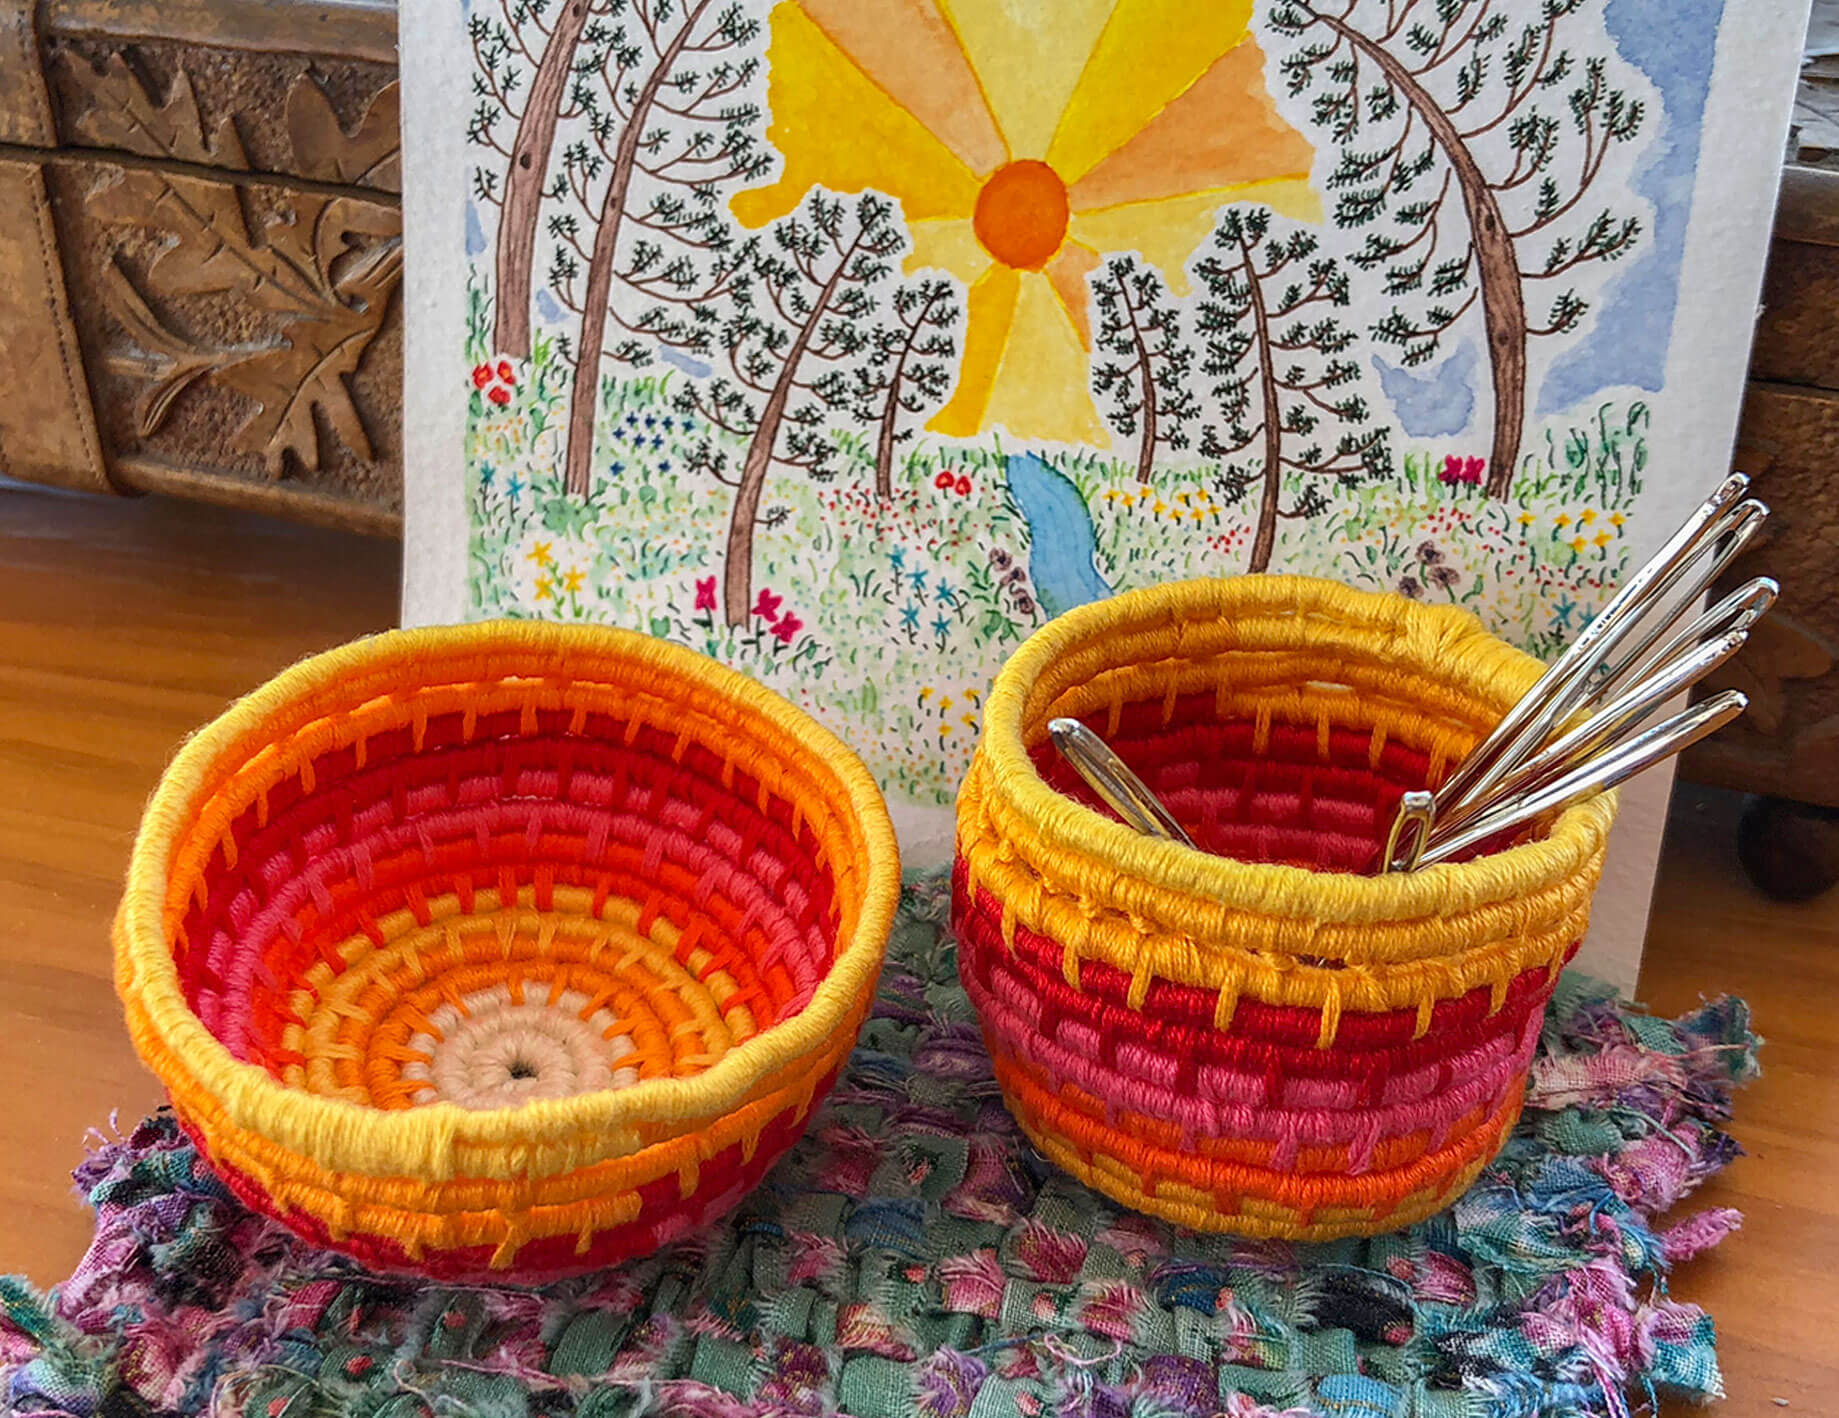 DIY coiled baskets